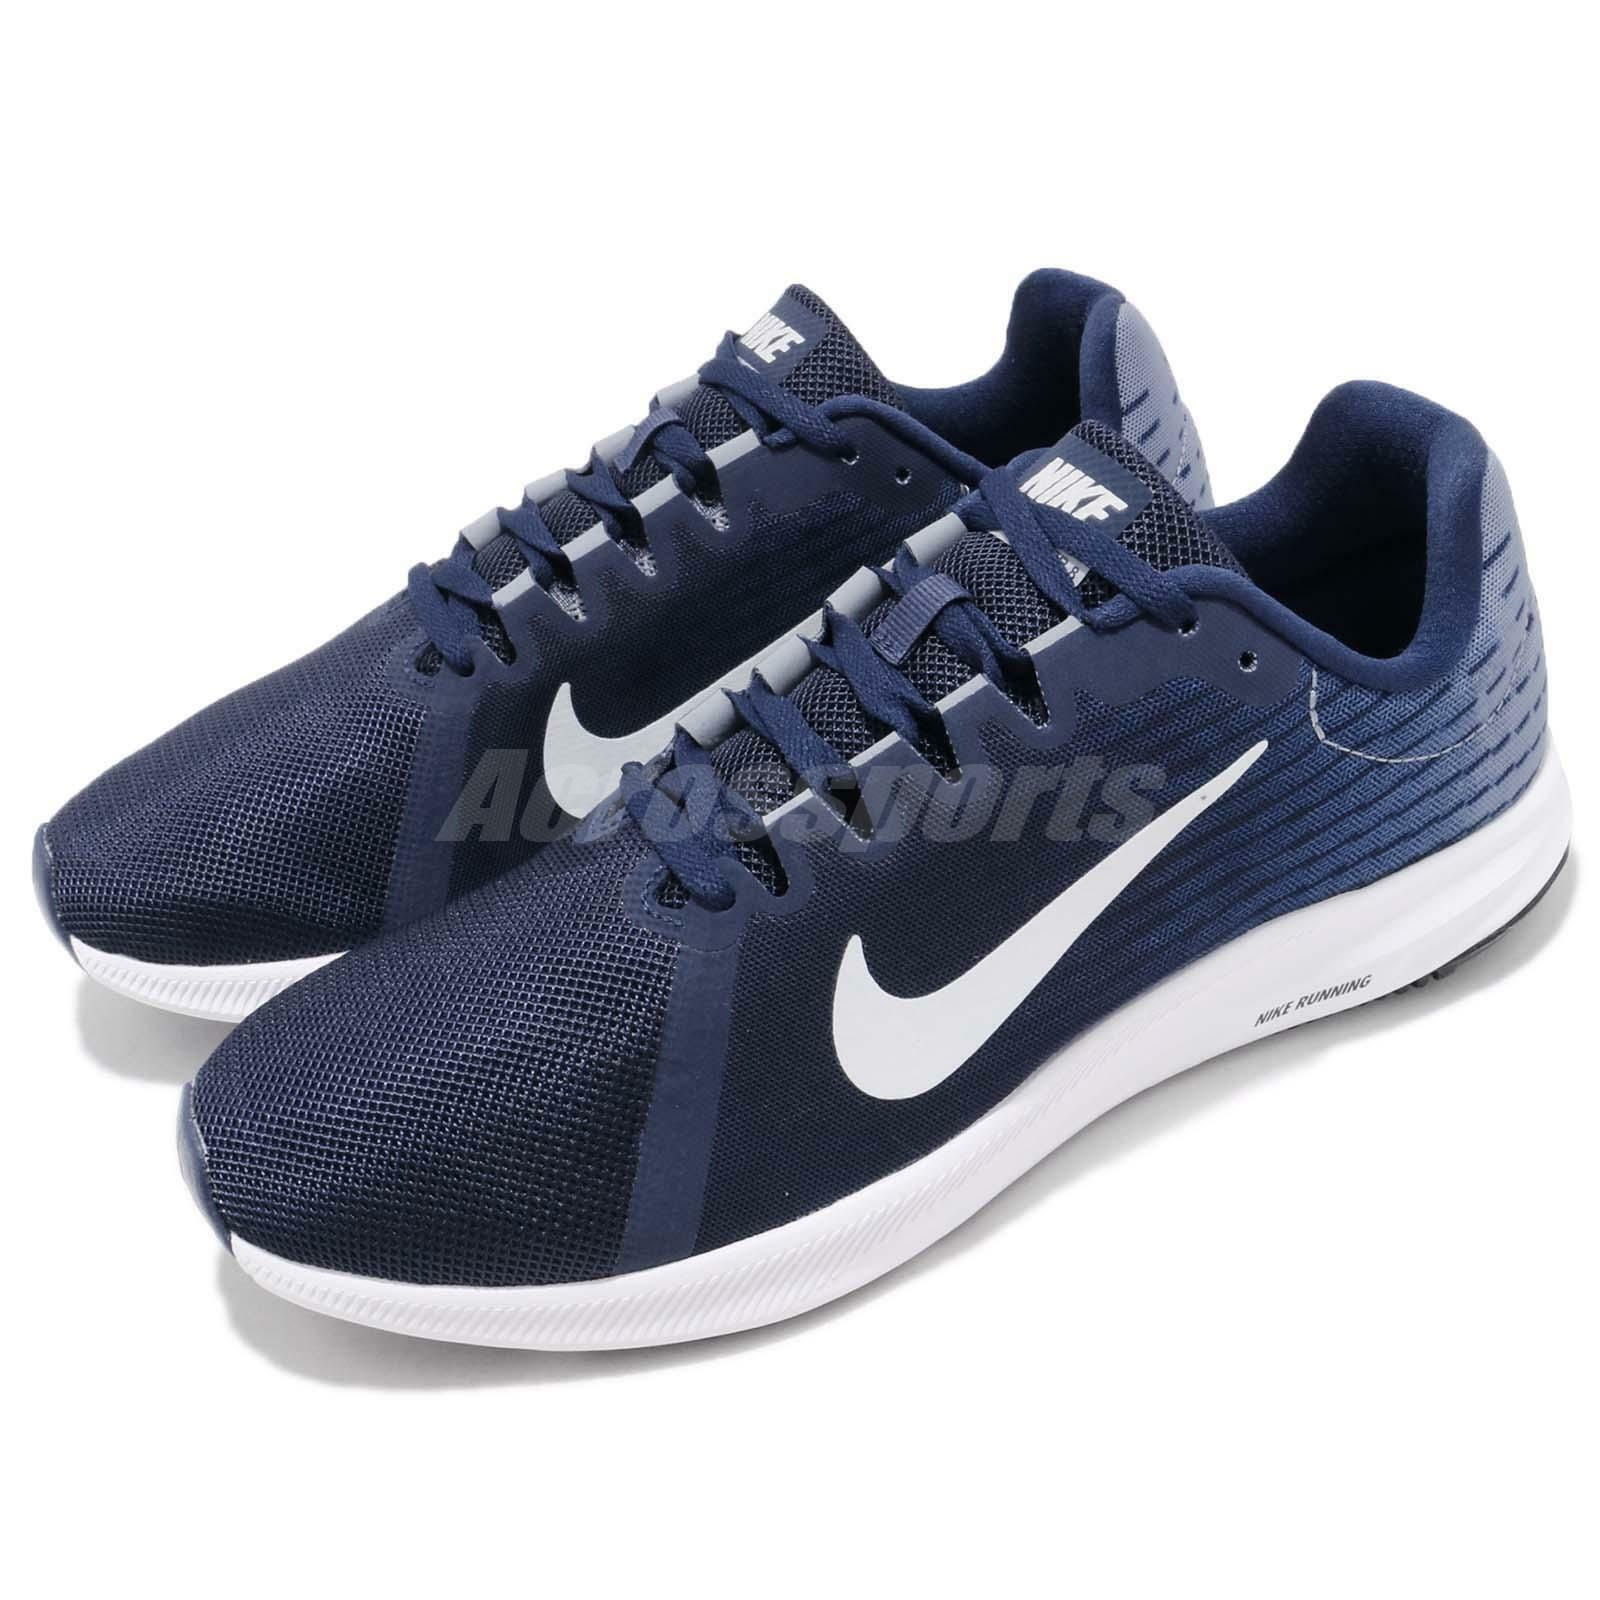 Nike Downshifter 8 VIII Bleu Void blanc homme fonctionnement chaussures Sneakers 908984-404